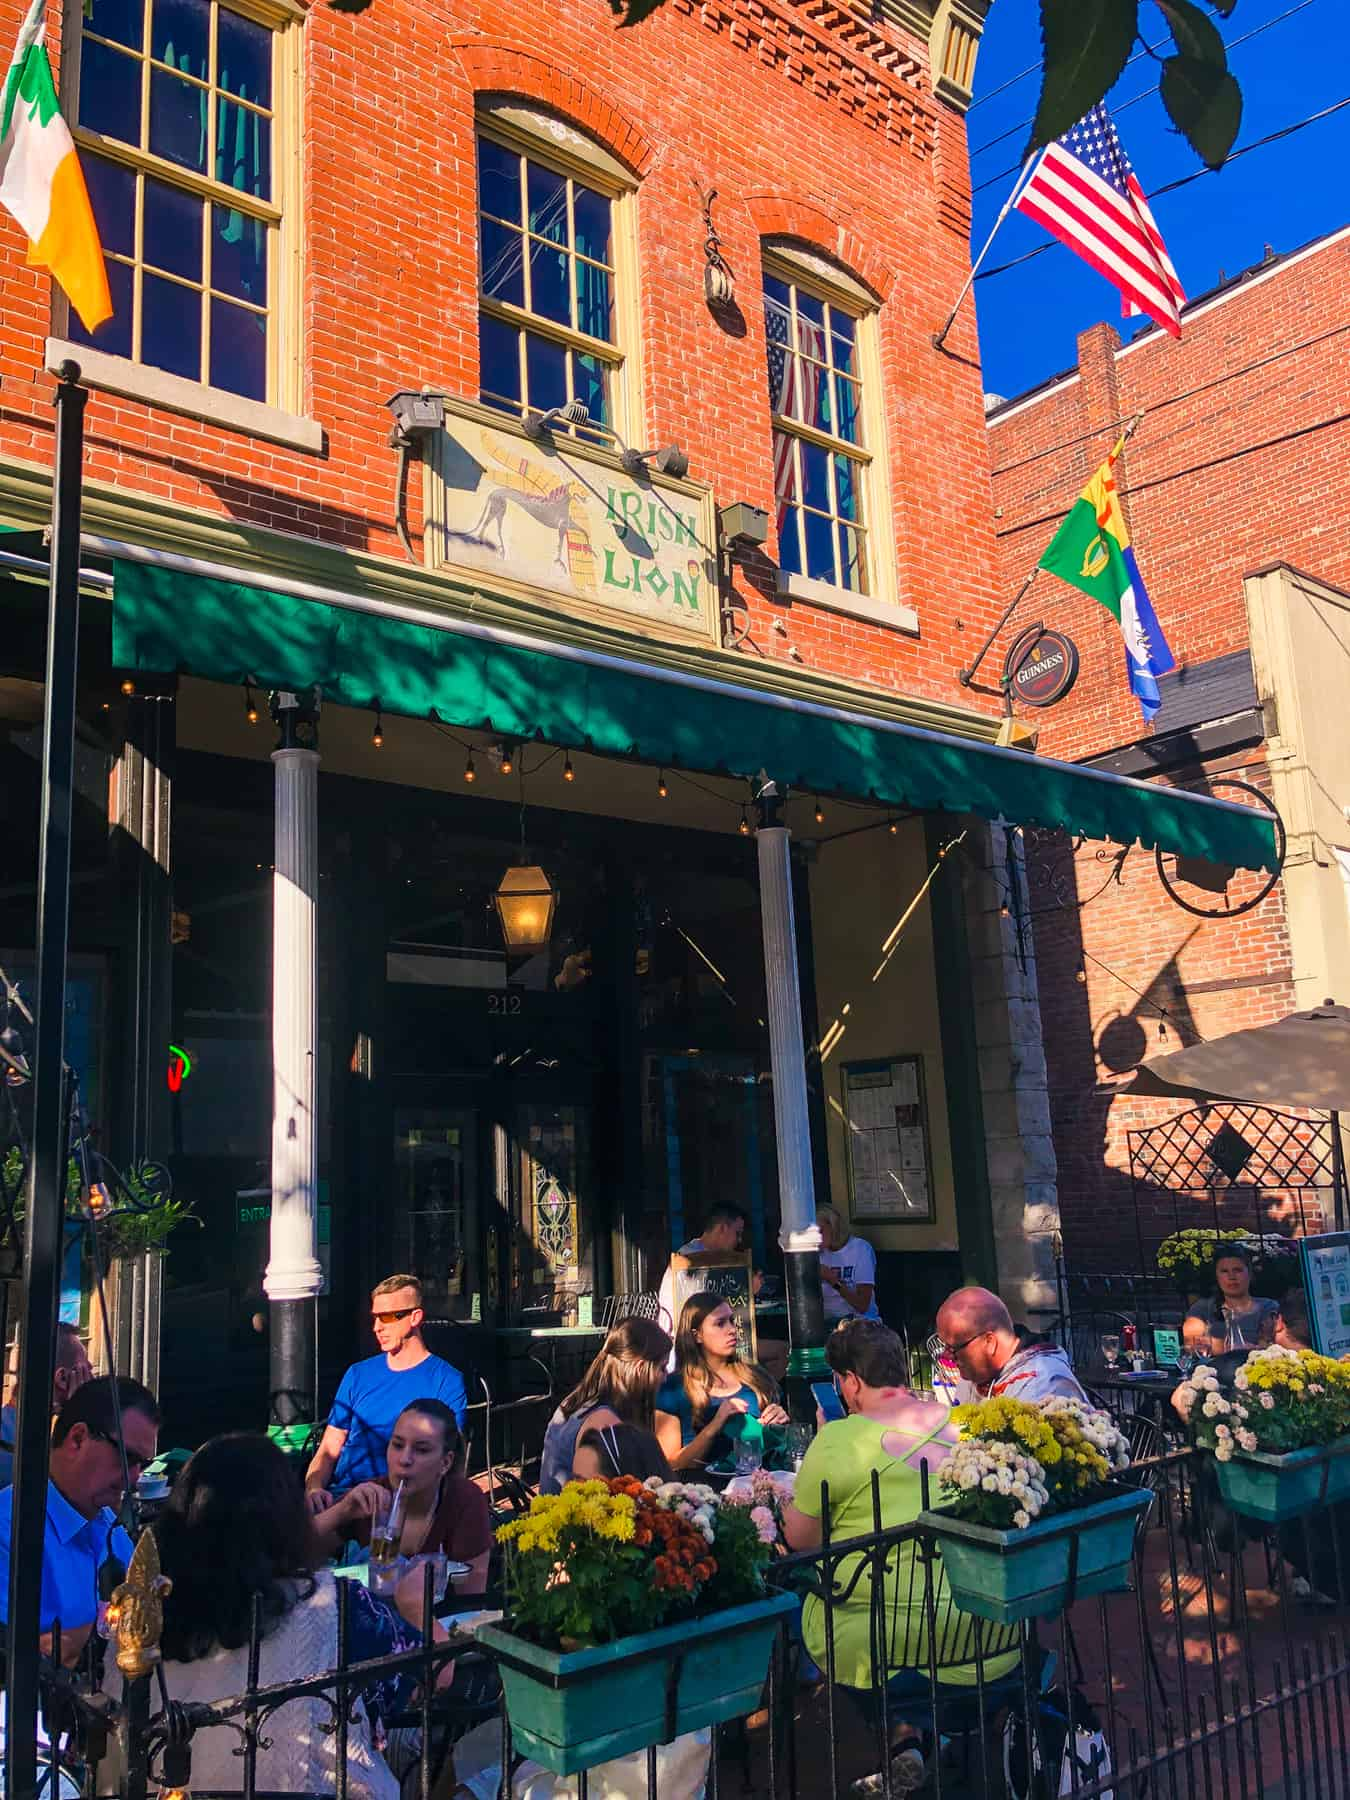 The outside of the Irish Lion in Bloomington, IN. The restaurant is in a brick building with a green awning.